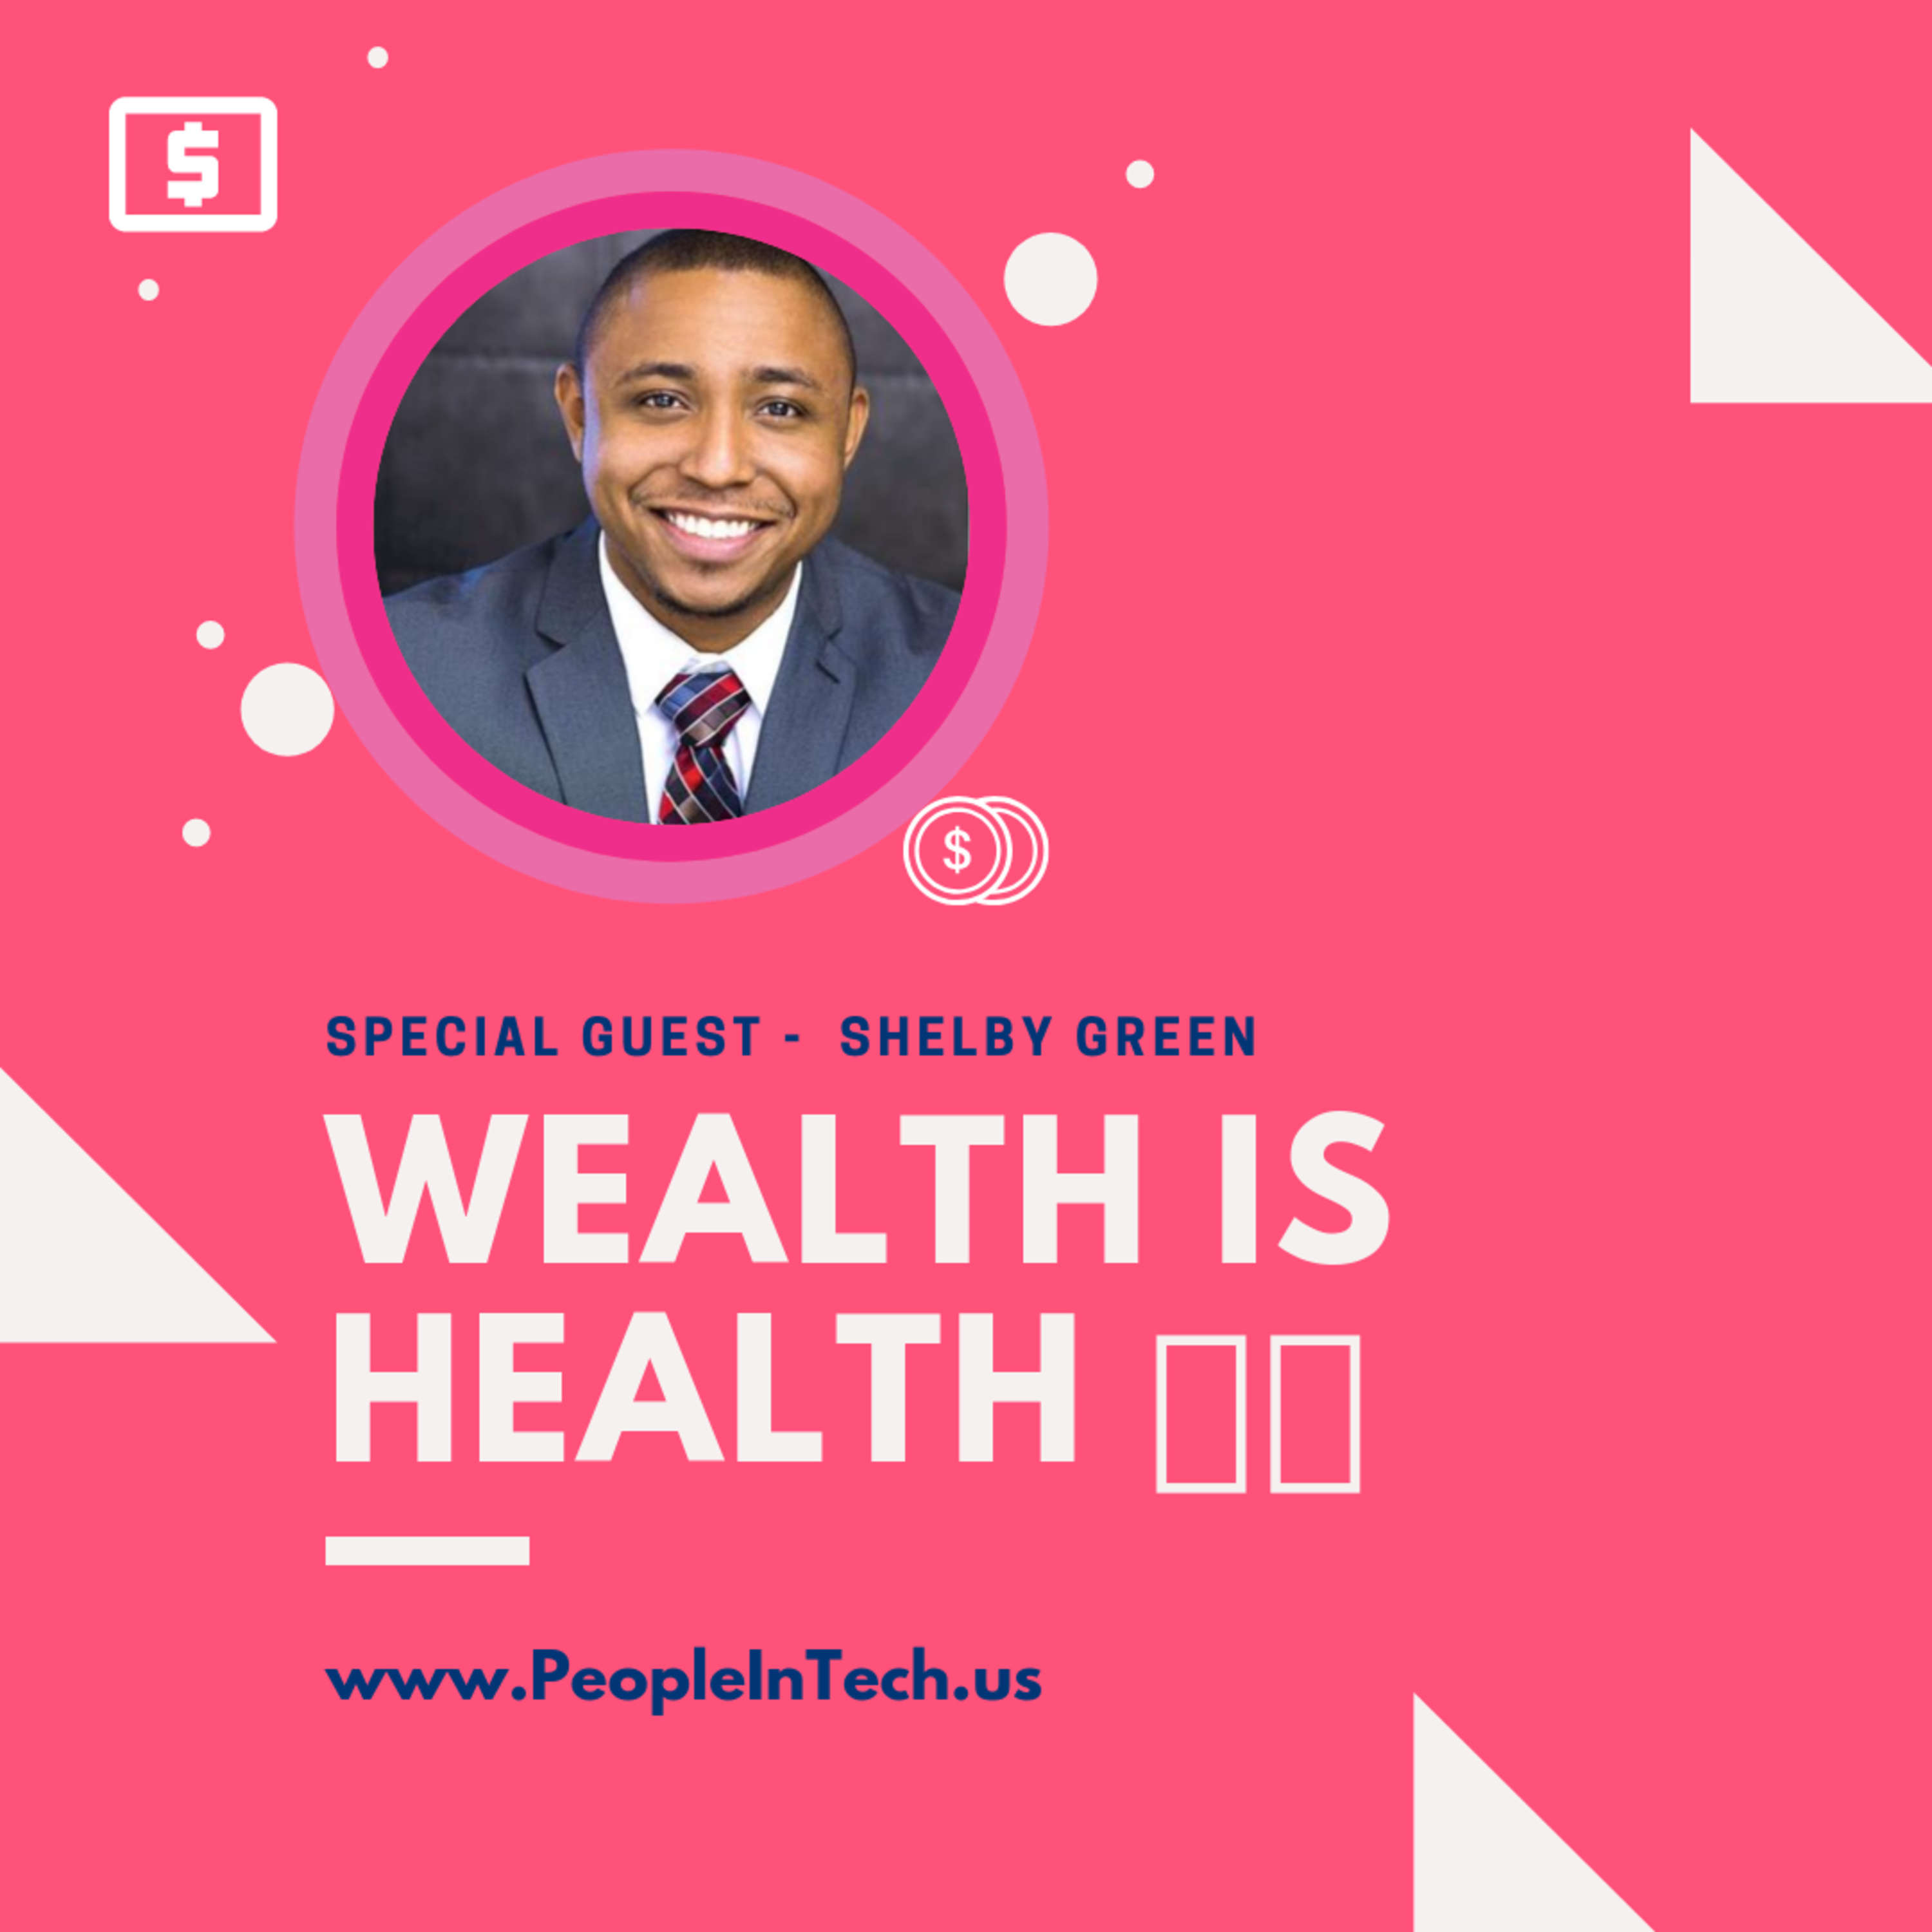 Wealth is Health - 09/23/19